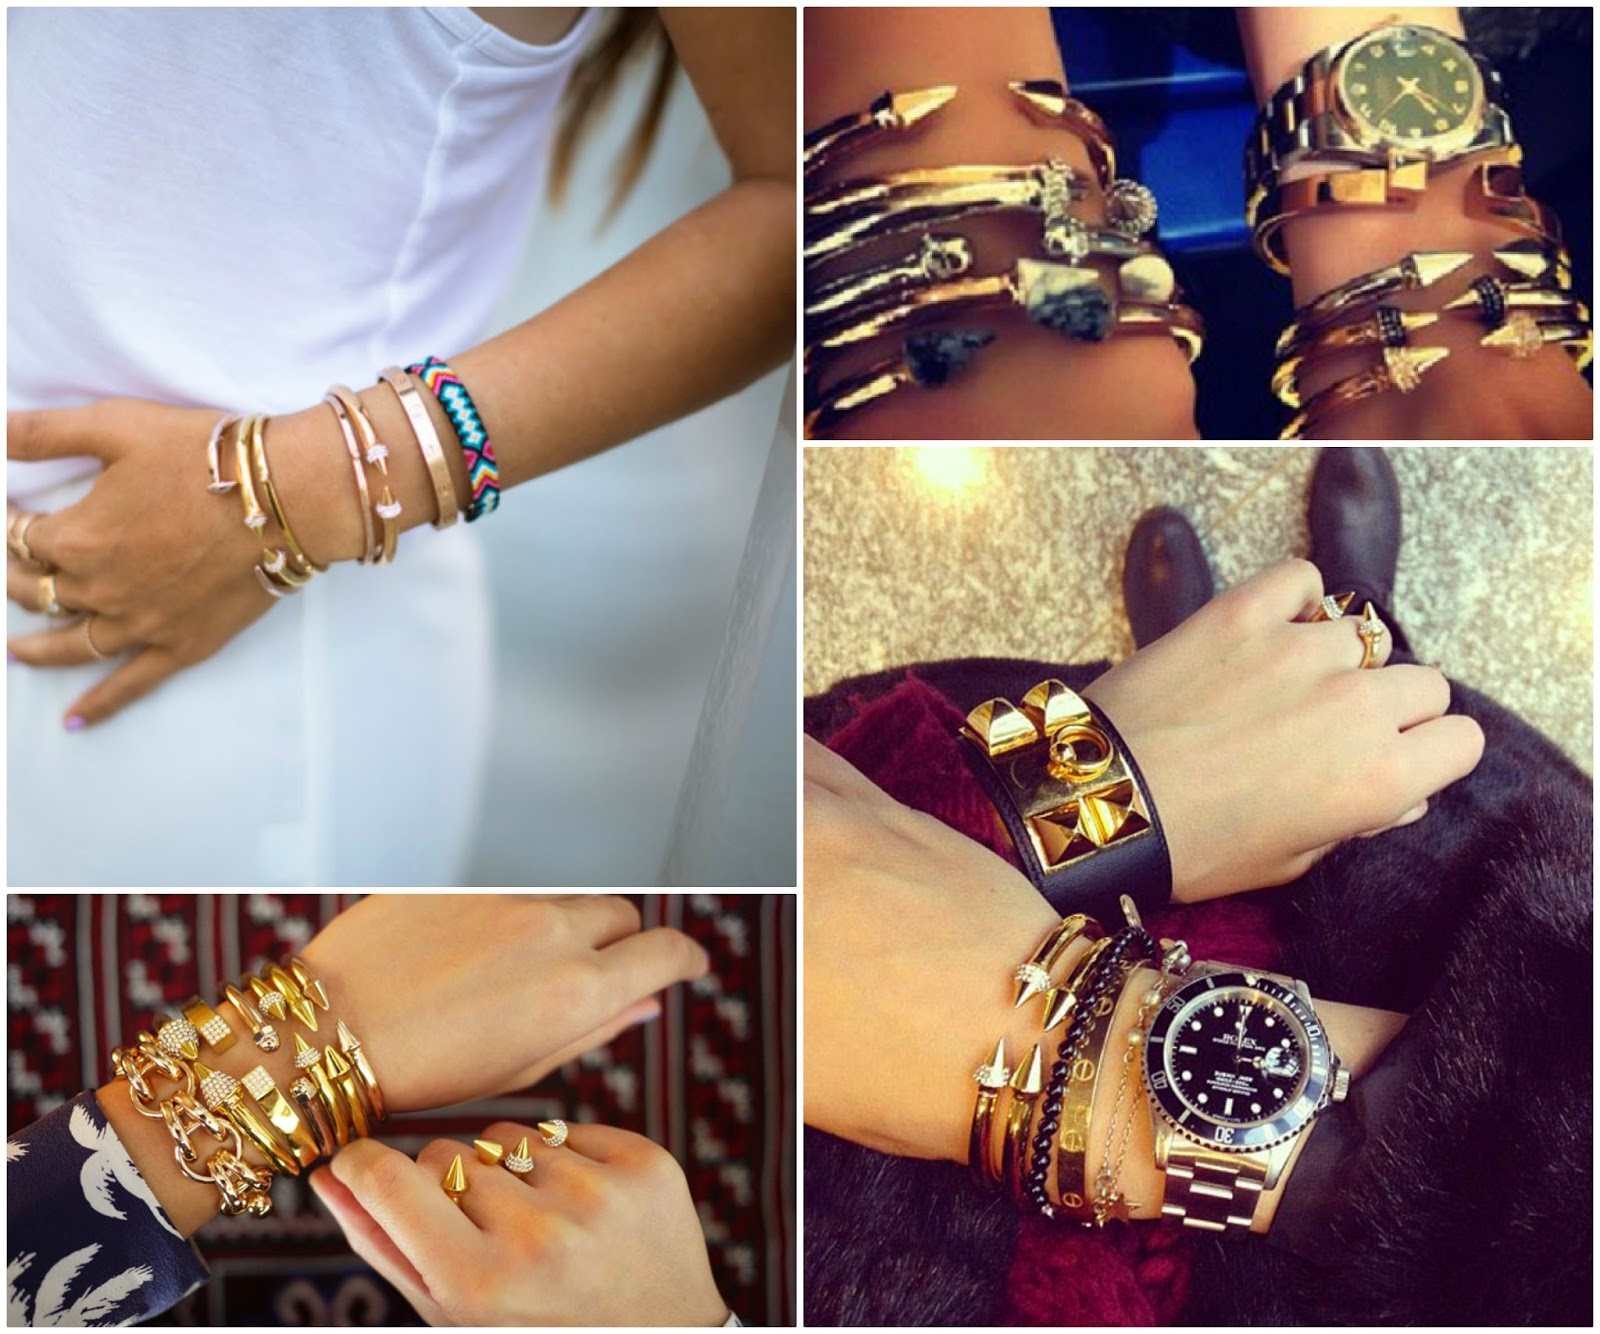 The Look For Less Vita Fede An Bracelets